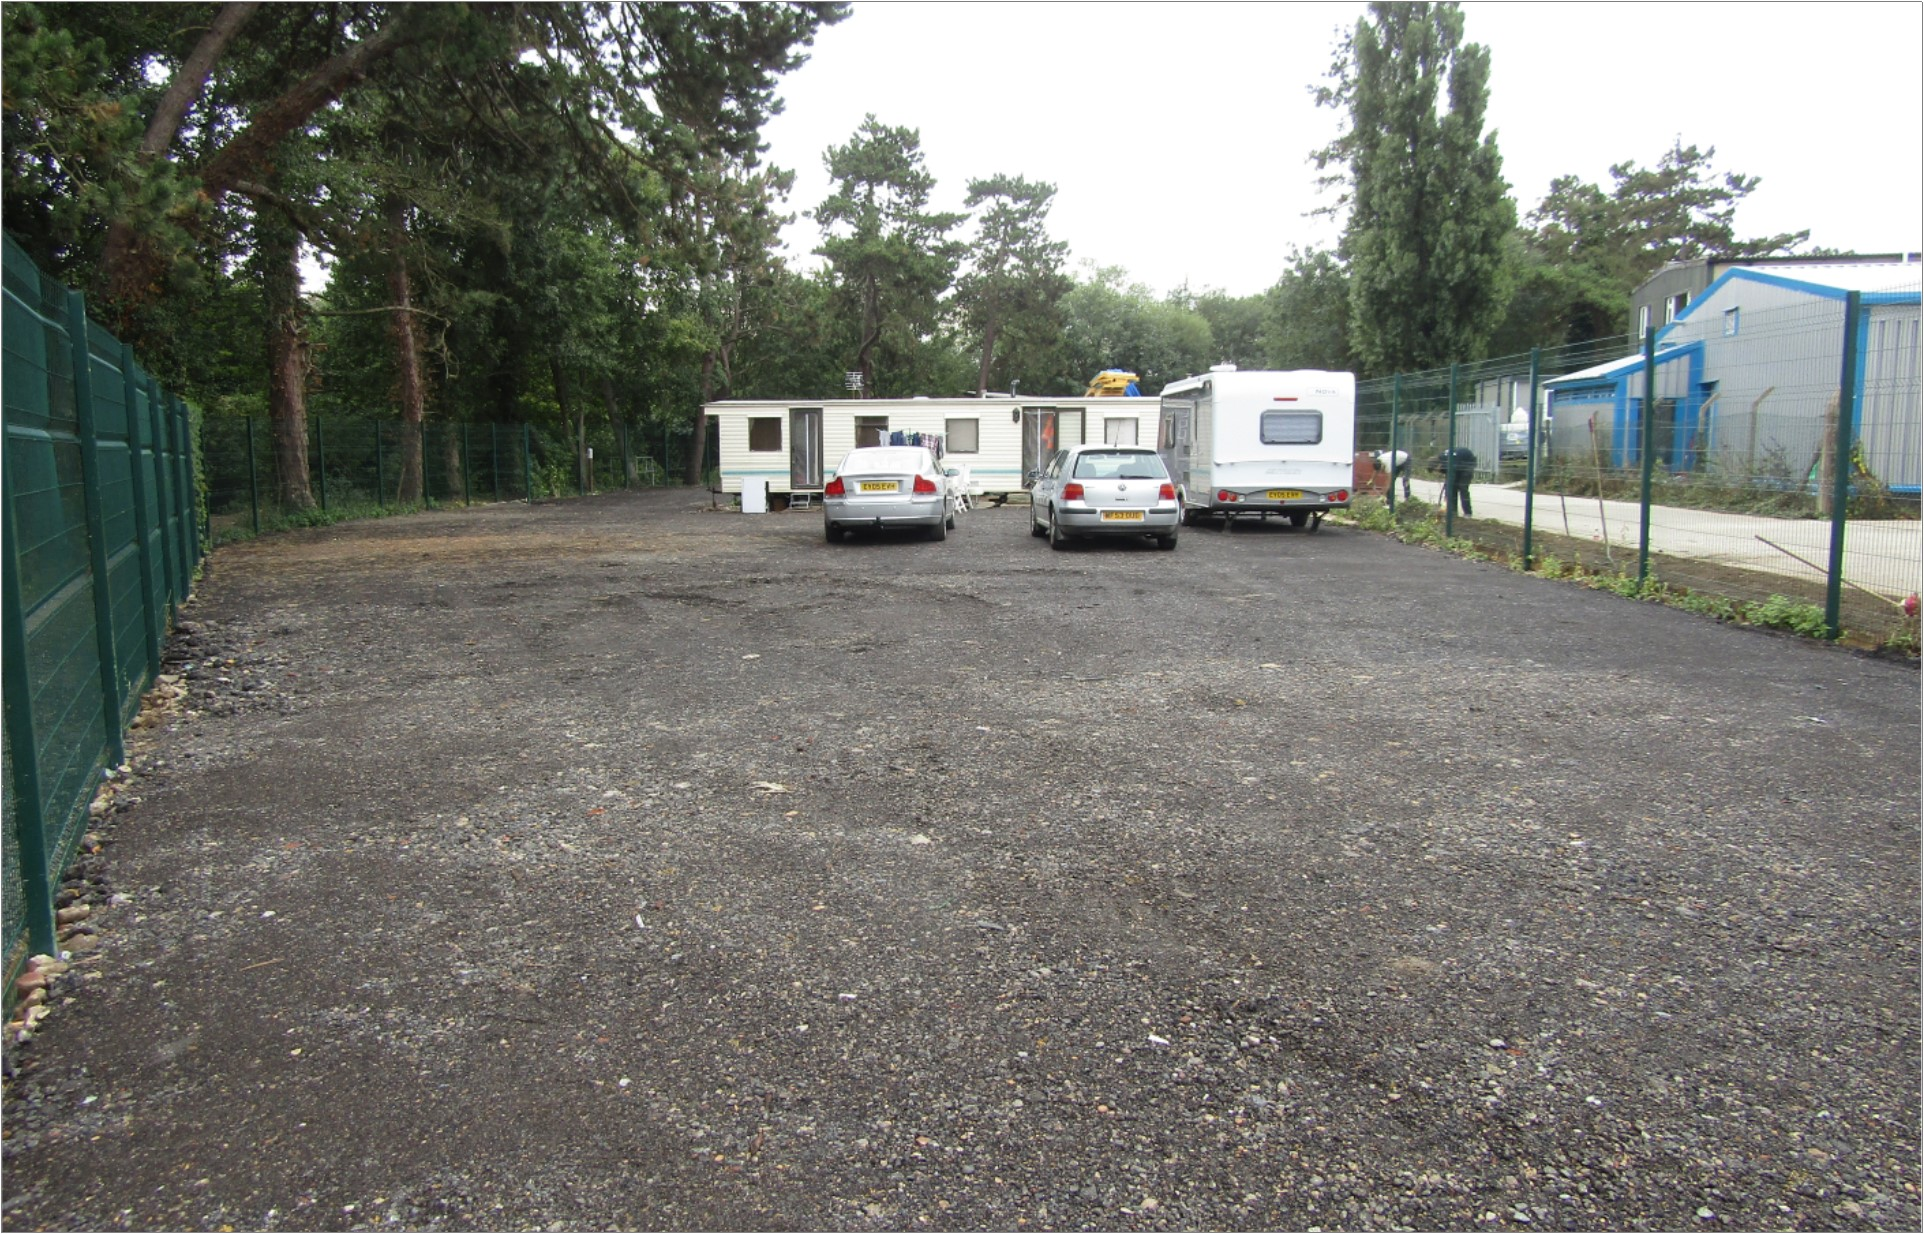 The Firs, Watermill Industrial Estate, Aspenden Road, Buntingford